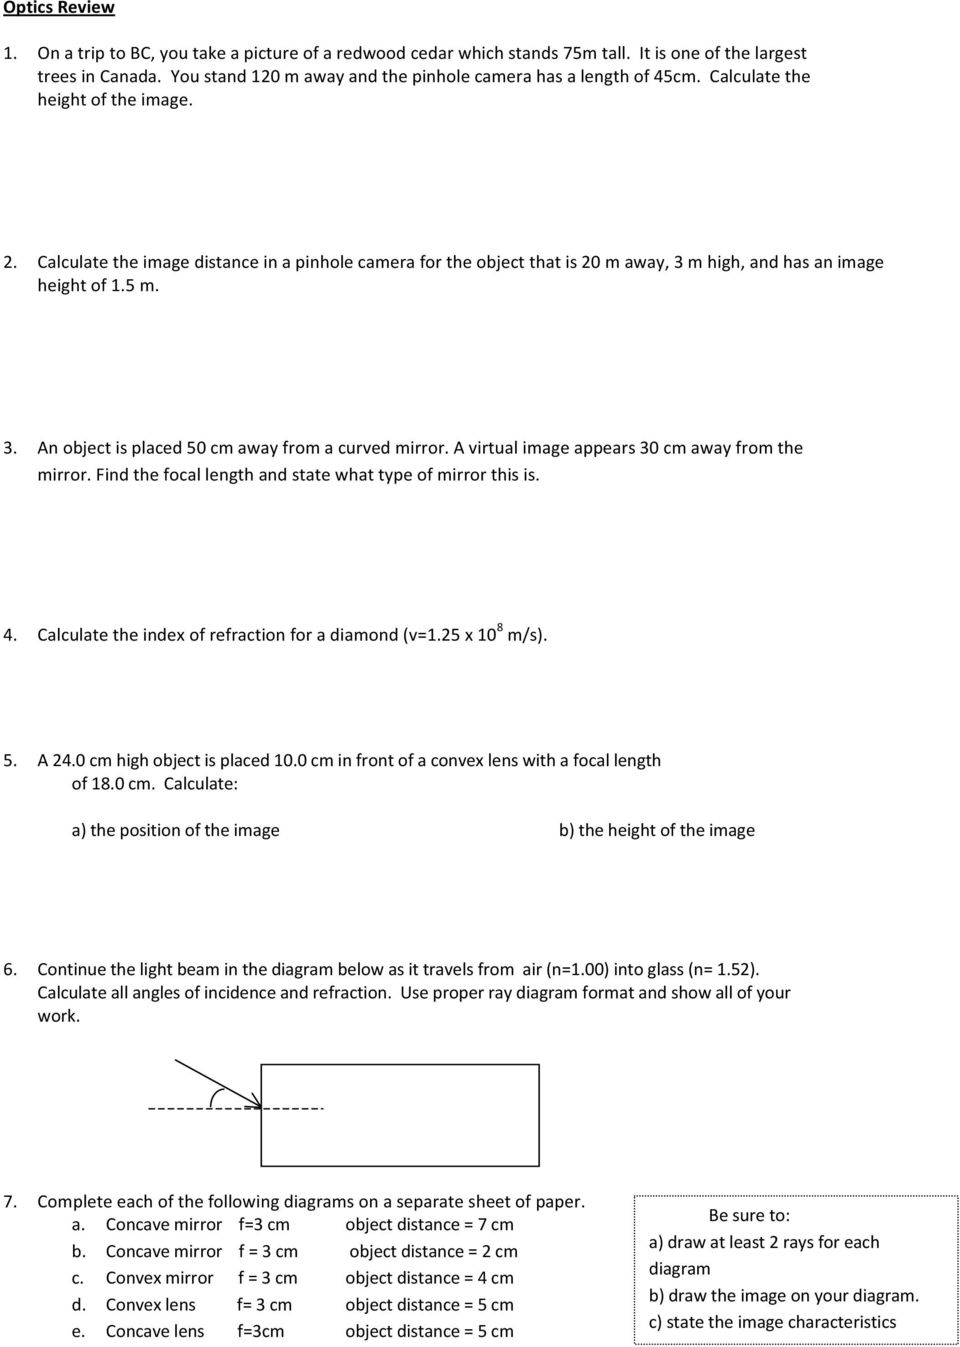 4 Calculate The Index Of Refraction For A Diamond V125 X 10 8 M Pinhole Camera Diagram Image Distance In Object That Is 20 Away